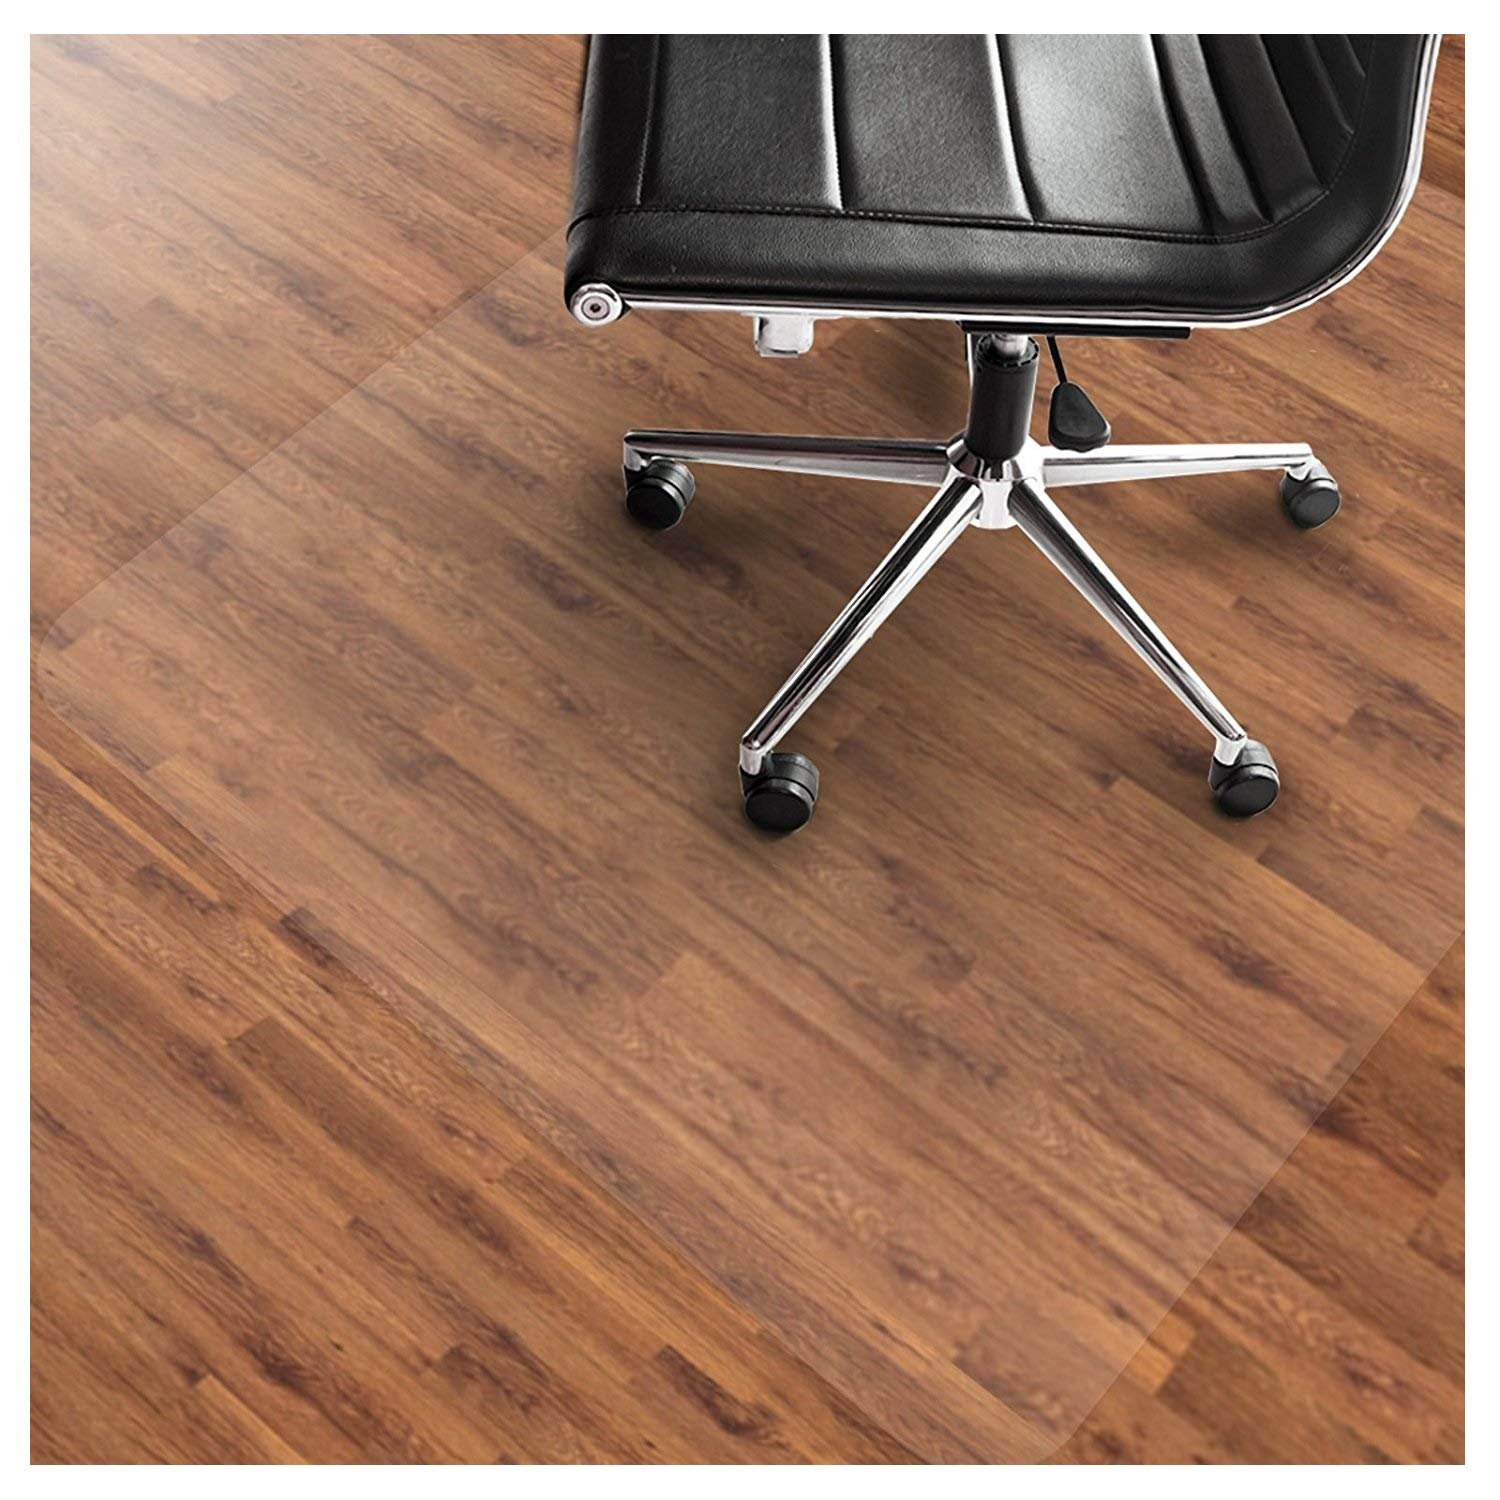 Office Marshal PVC Chair Mat for Hard Floors - 48'' x 72'' | Multiple Clear, Multi-Purpose Floor Protector by Office Marshal